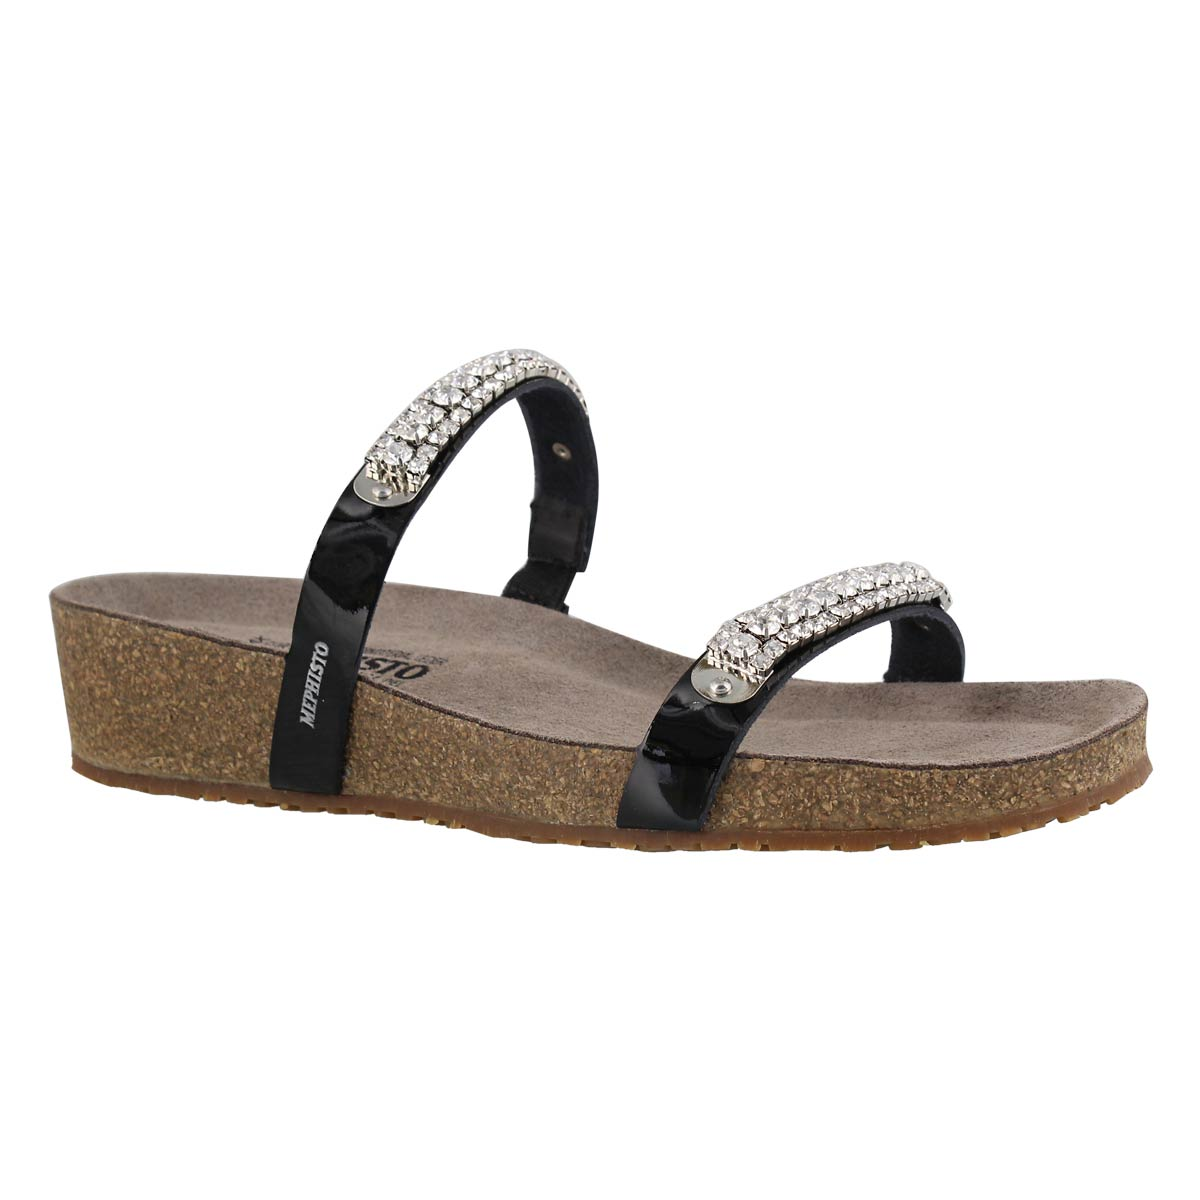 Women's IVANA black wedge cork footbed sandals